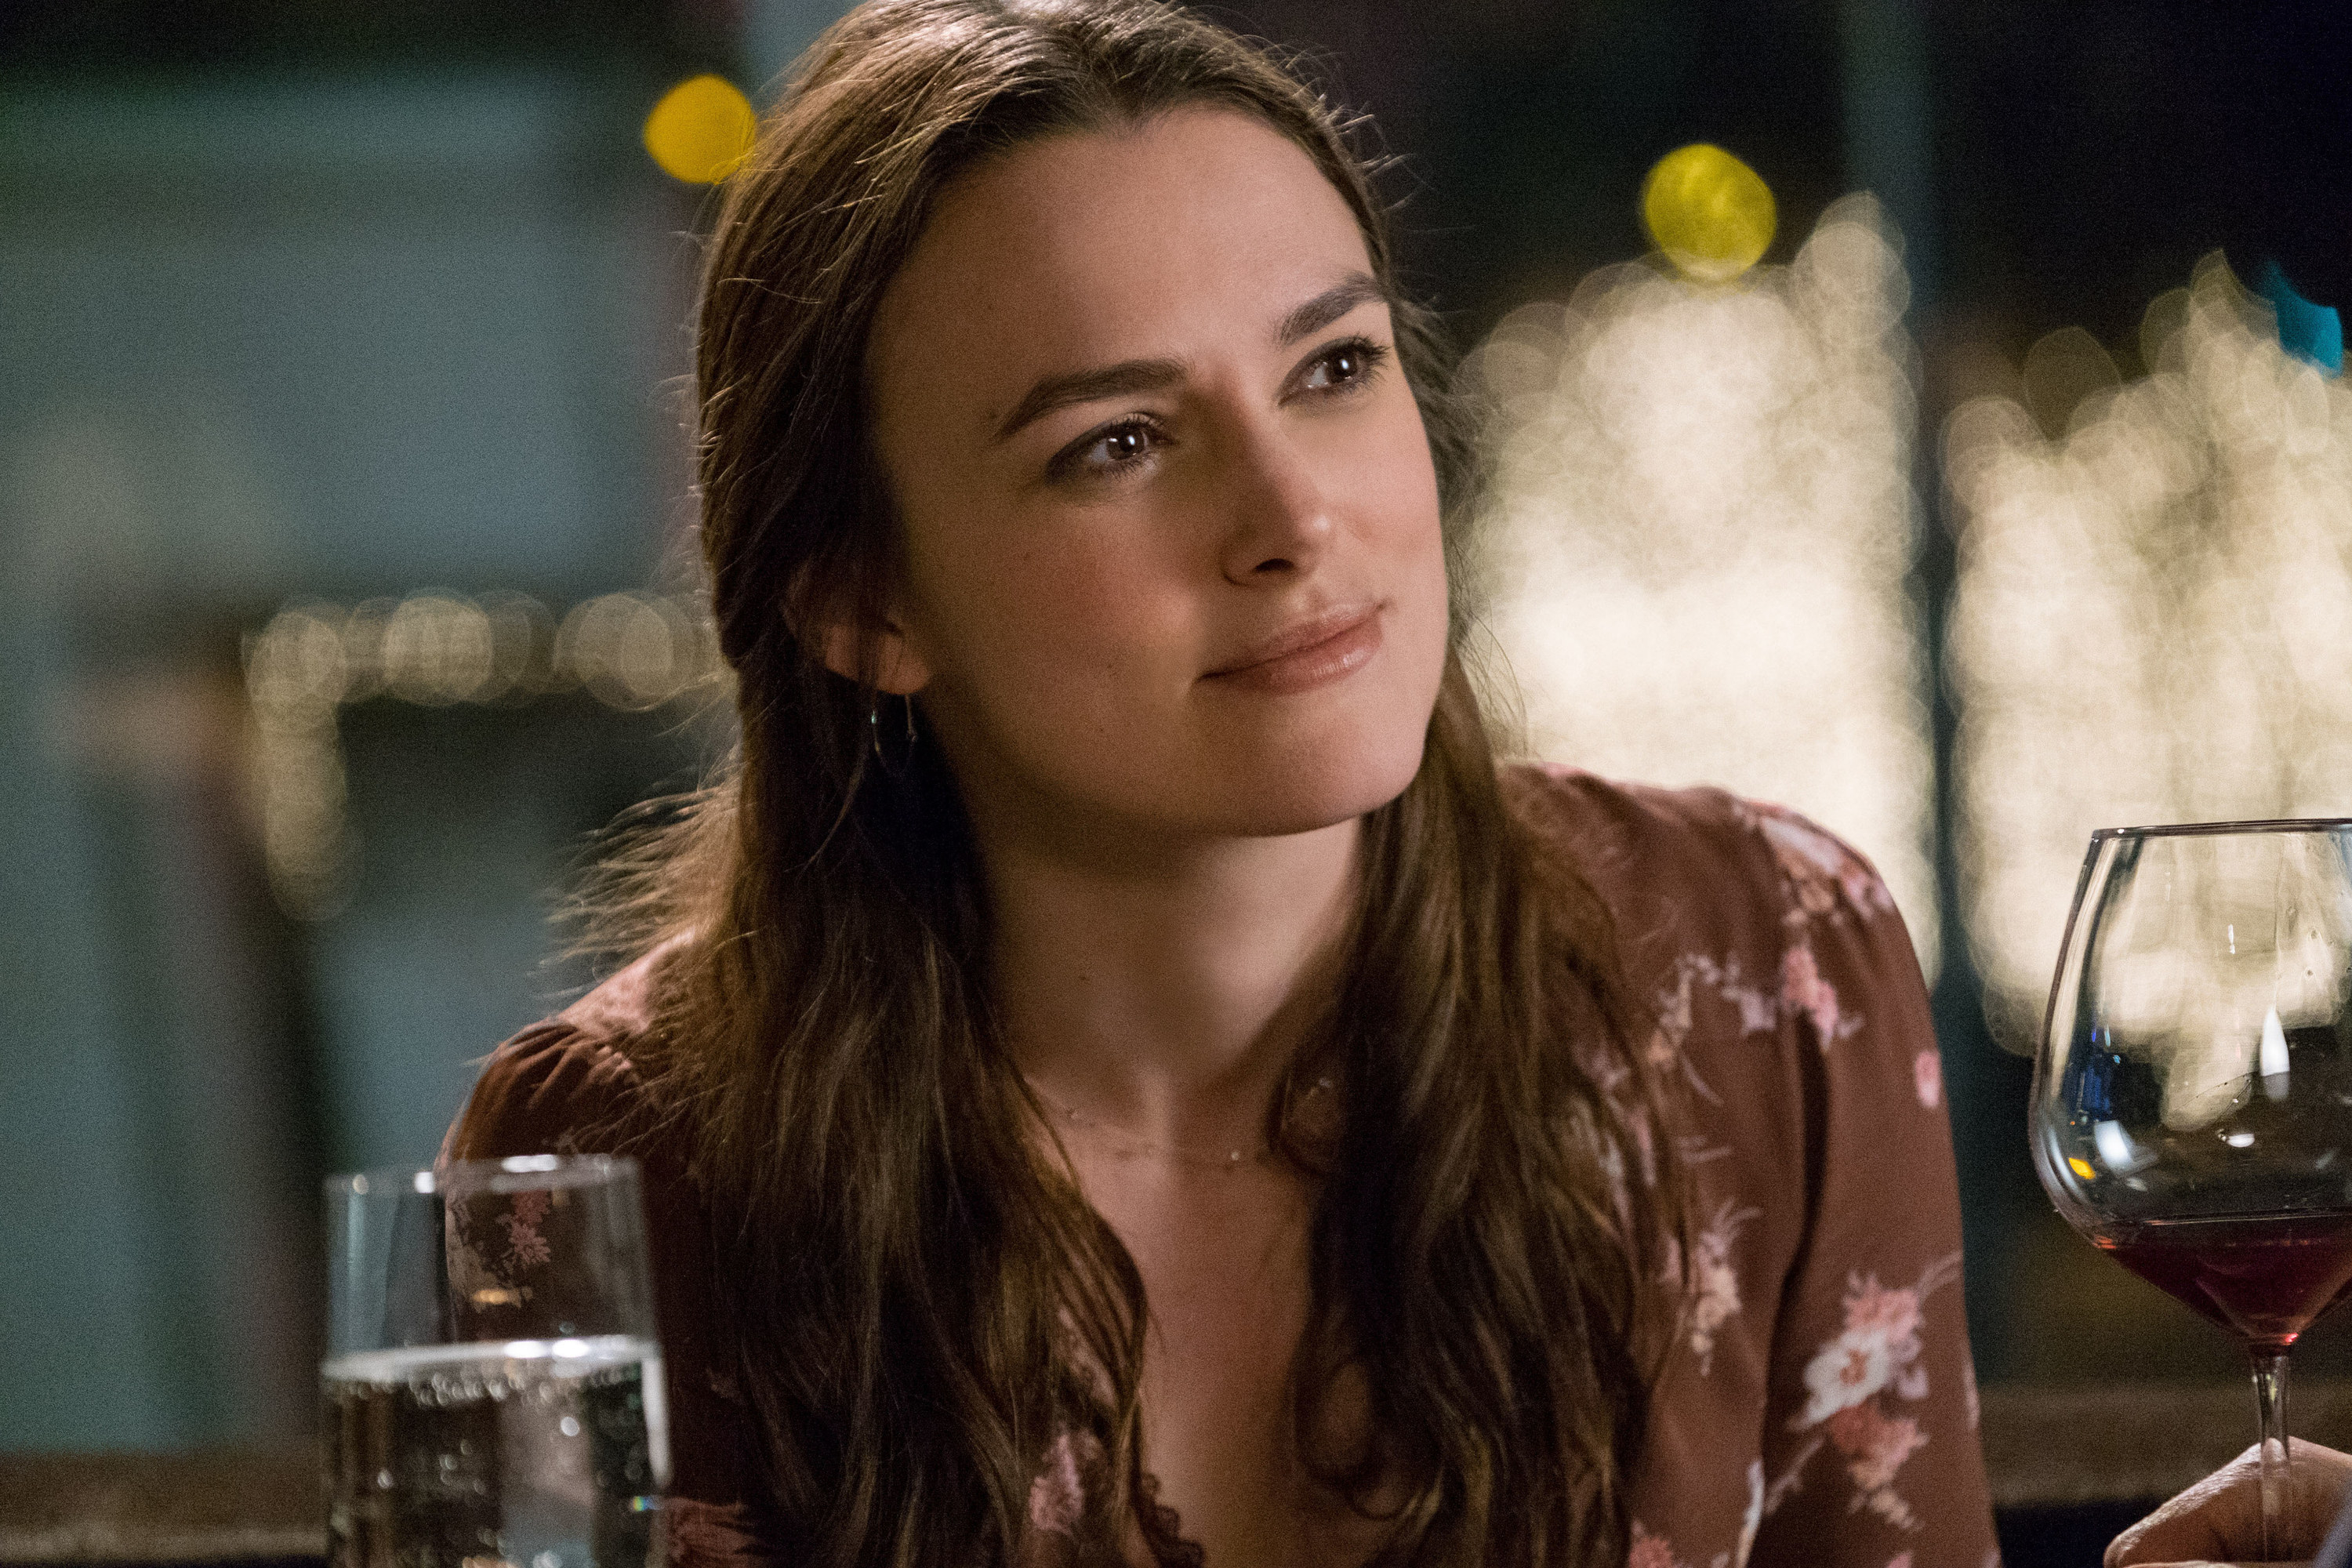 Keira Knightley sits in front of two glasses in the 2016 film Collateral Beauty